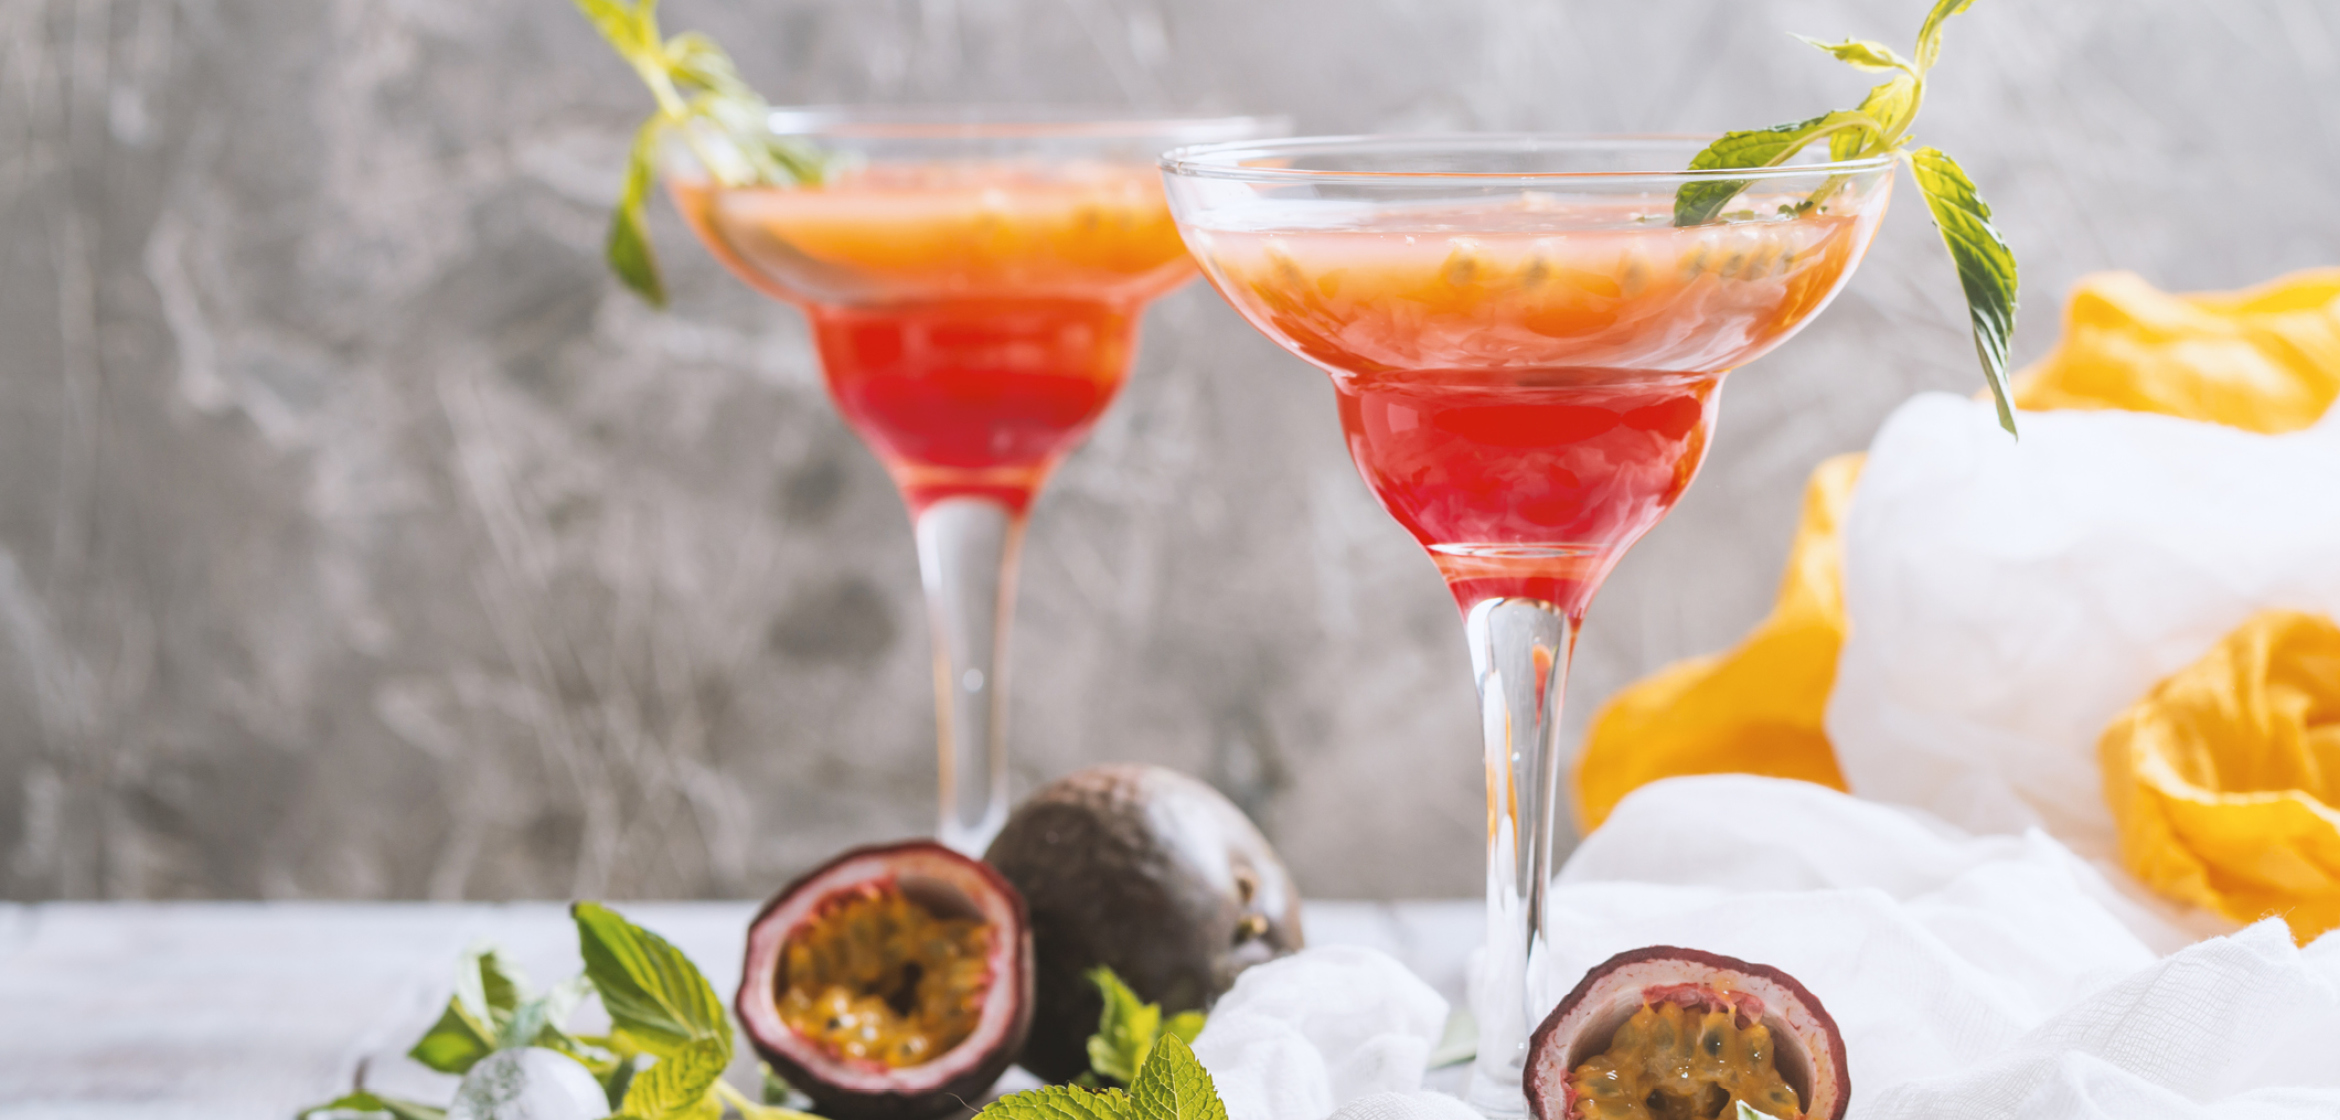 PASSIONFRUIT & WATERMELON MARGARITA